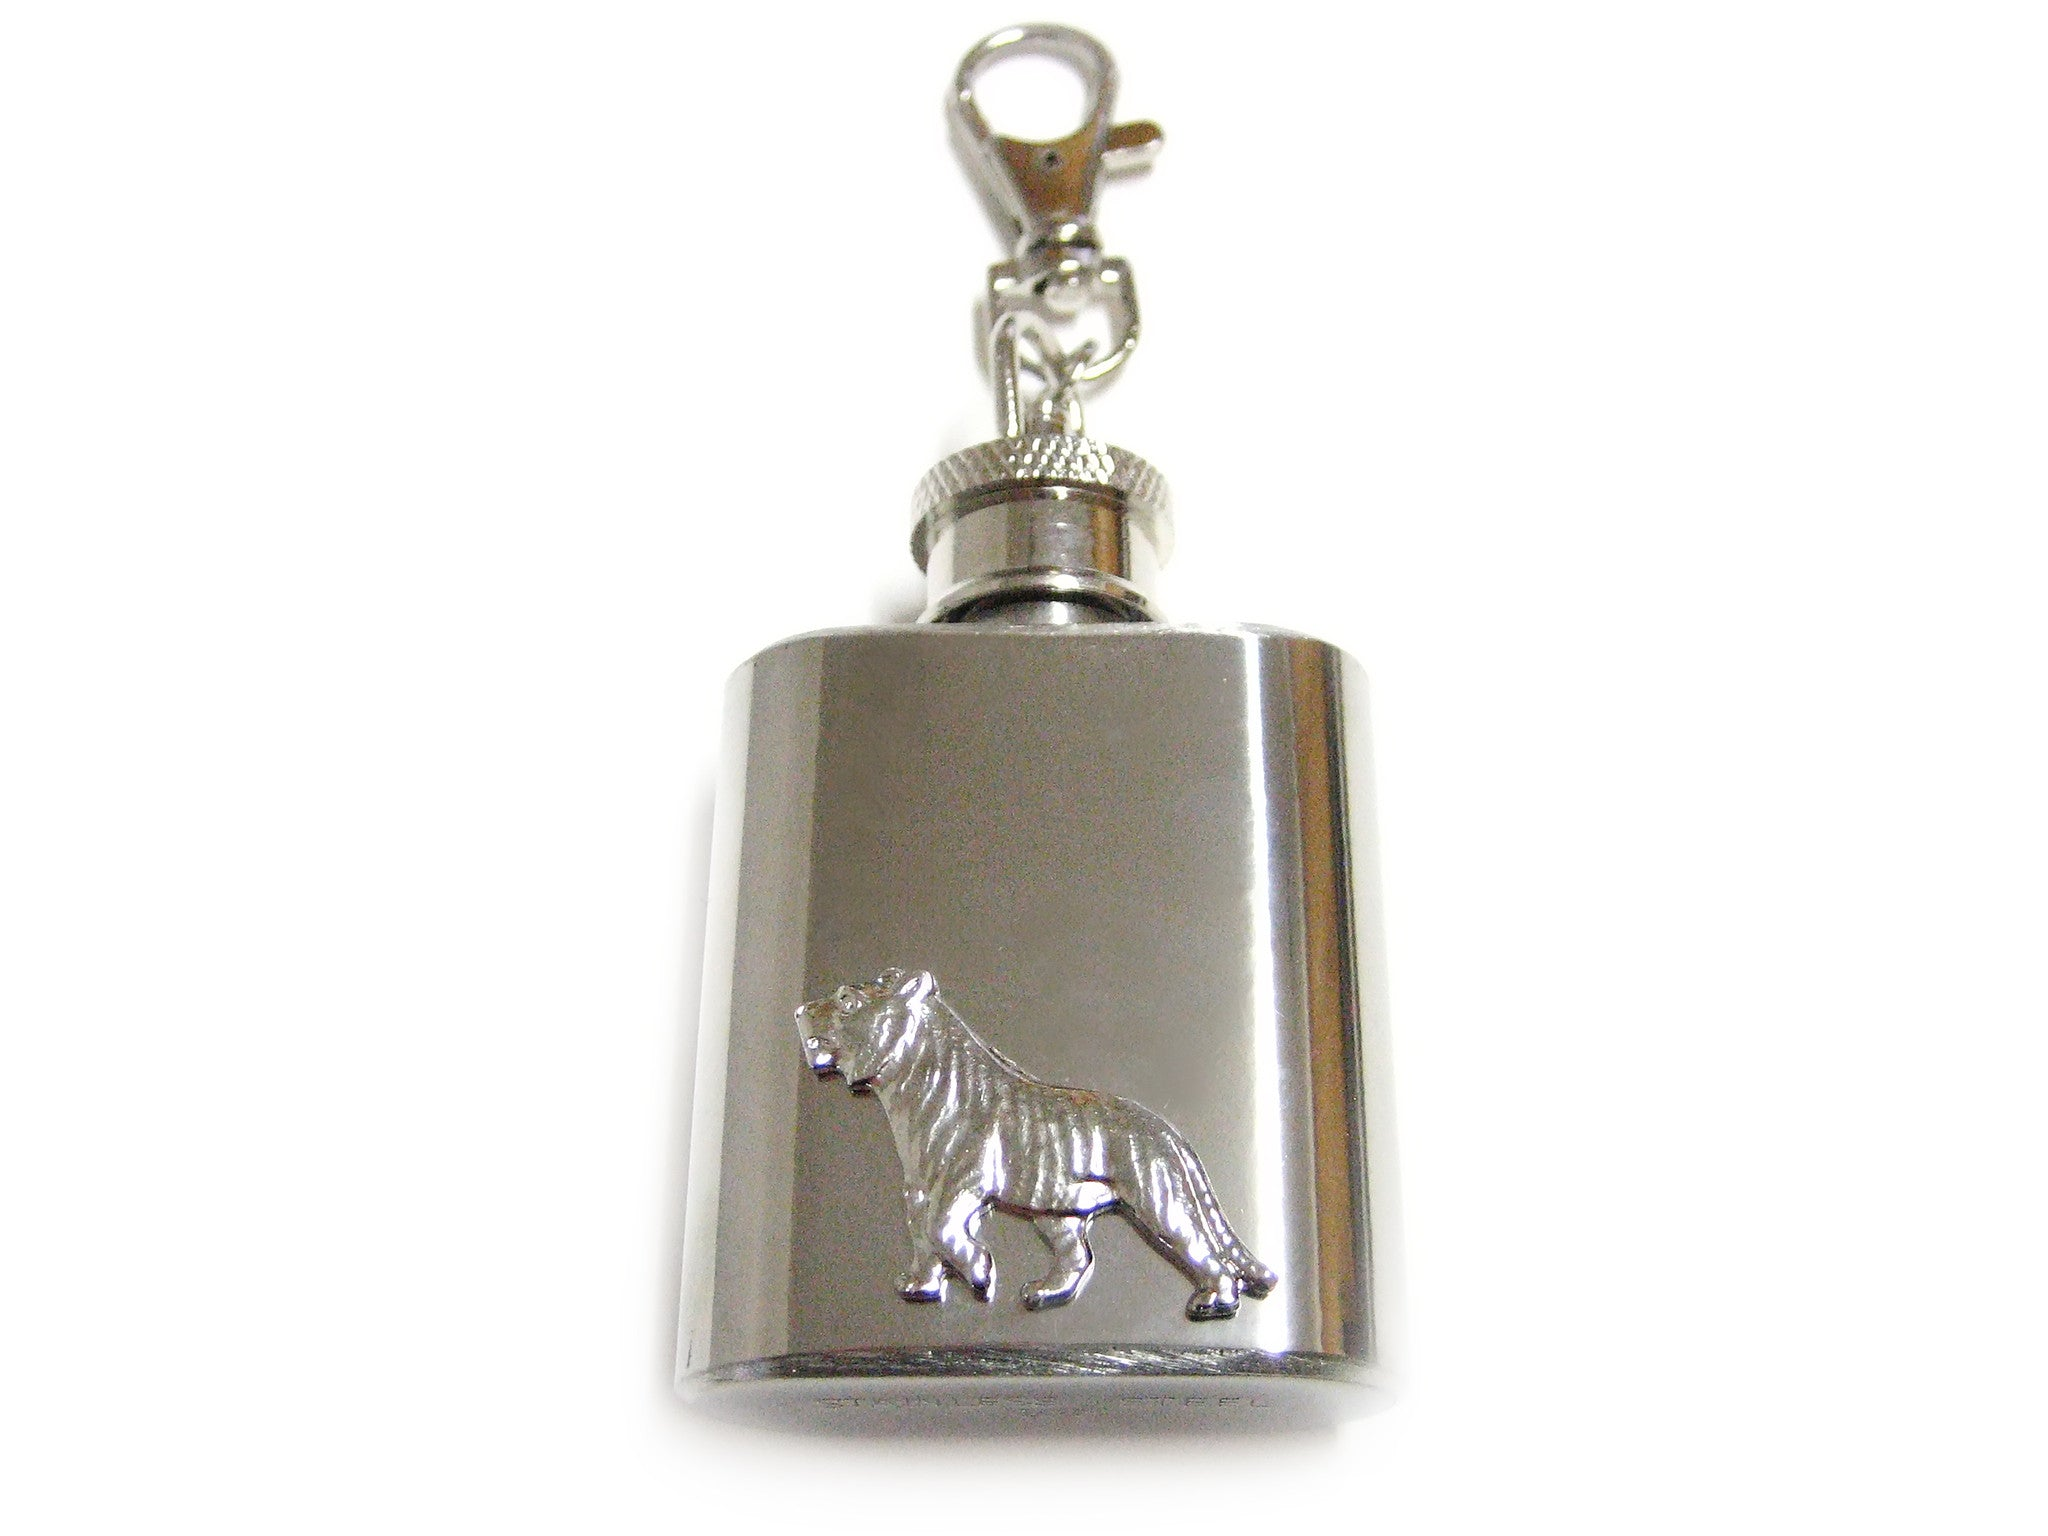 1 Oz. Stainless Steel Key Chain Flask with Tiger Pendant